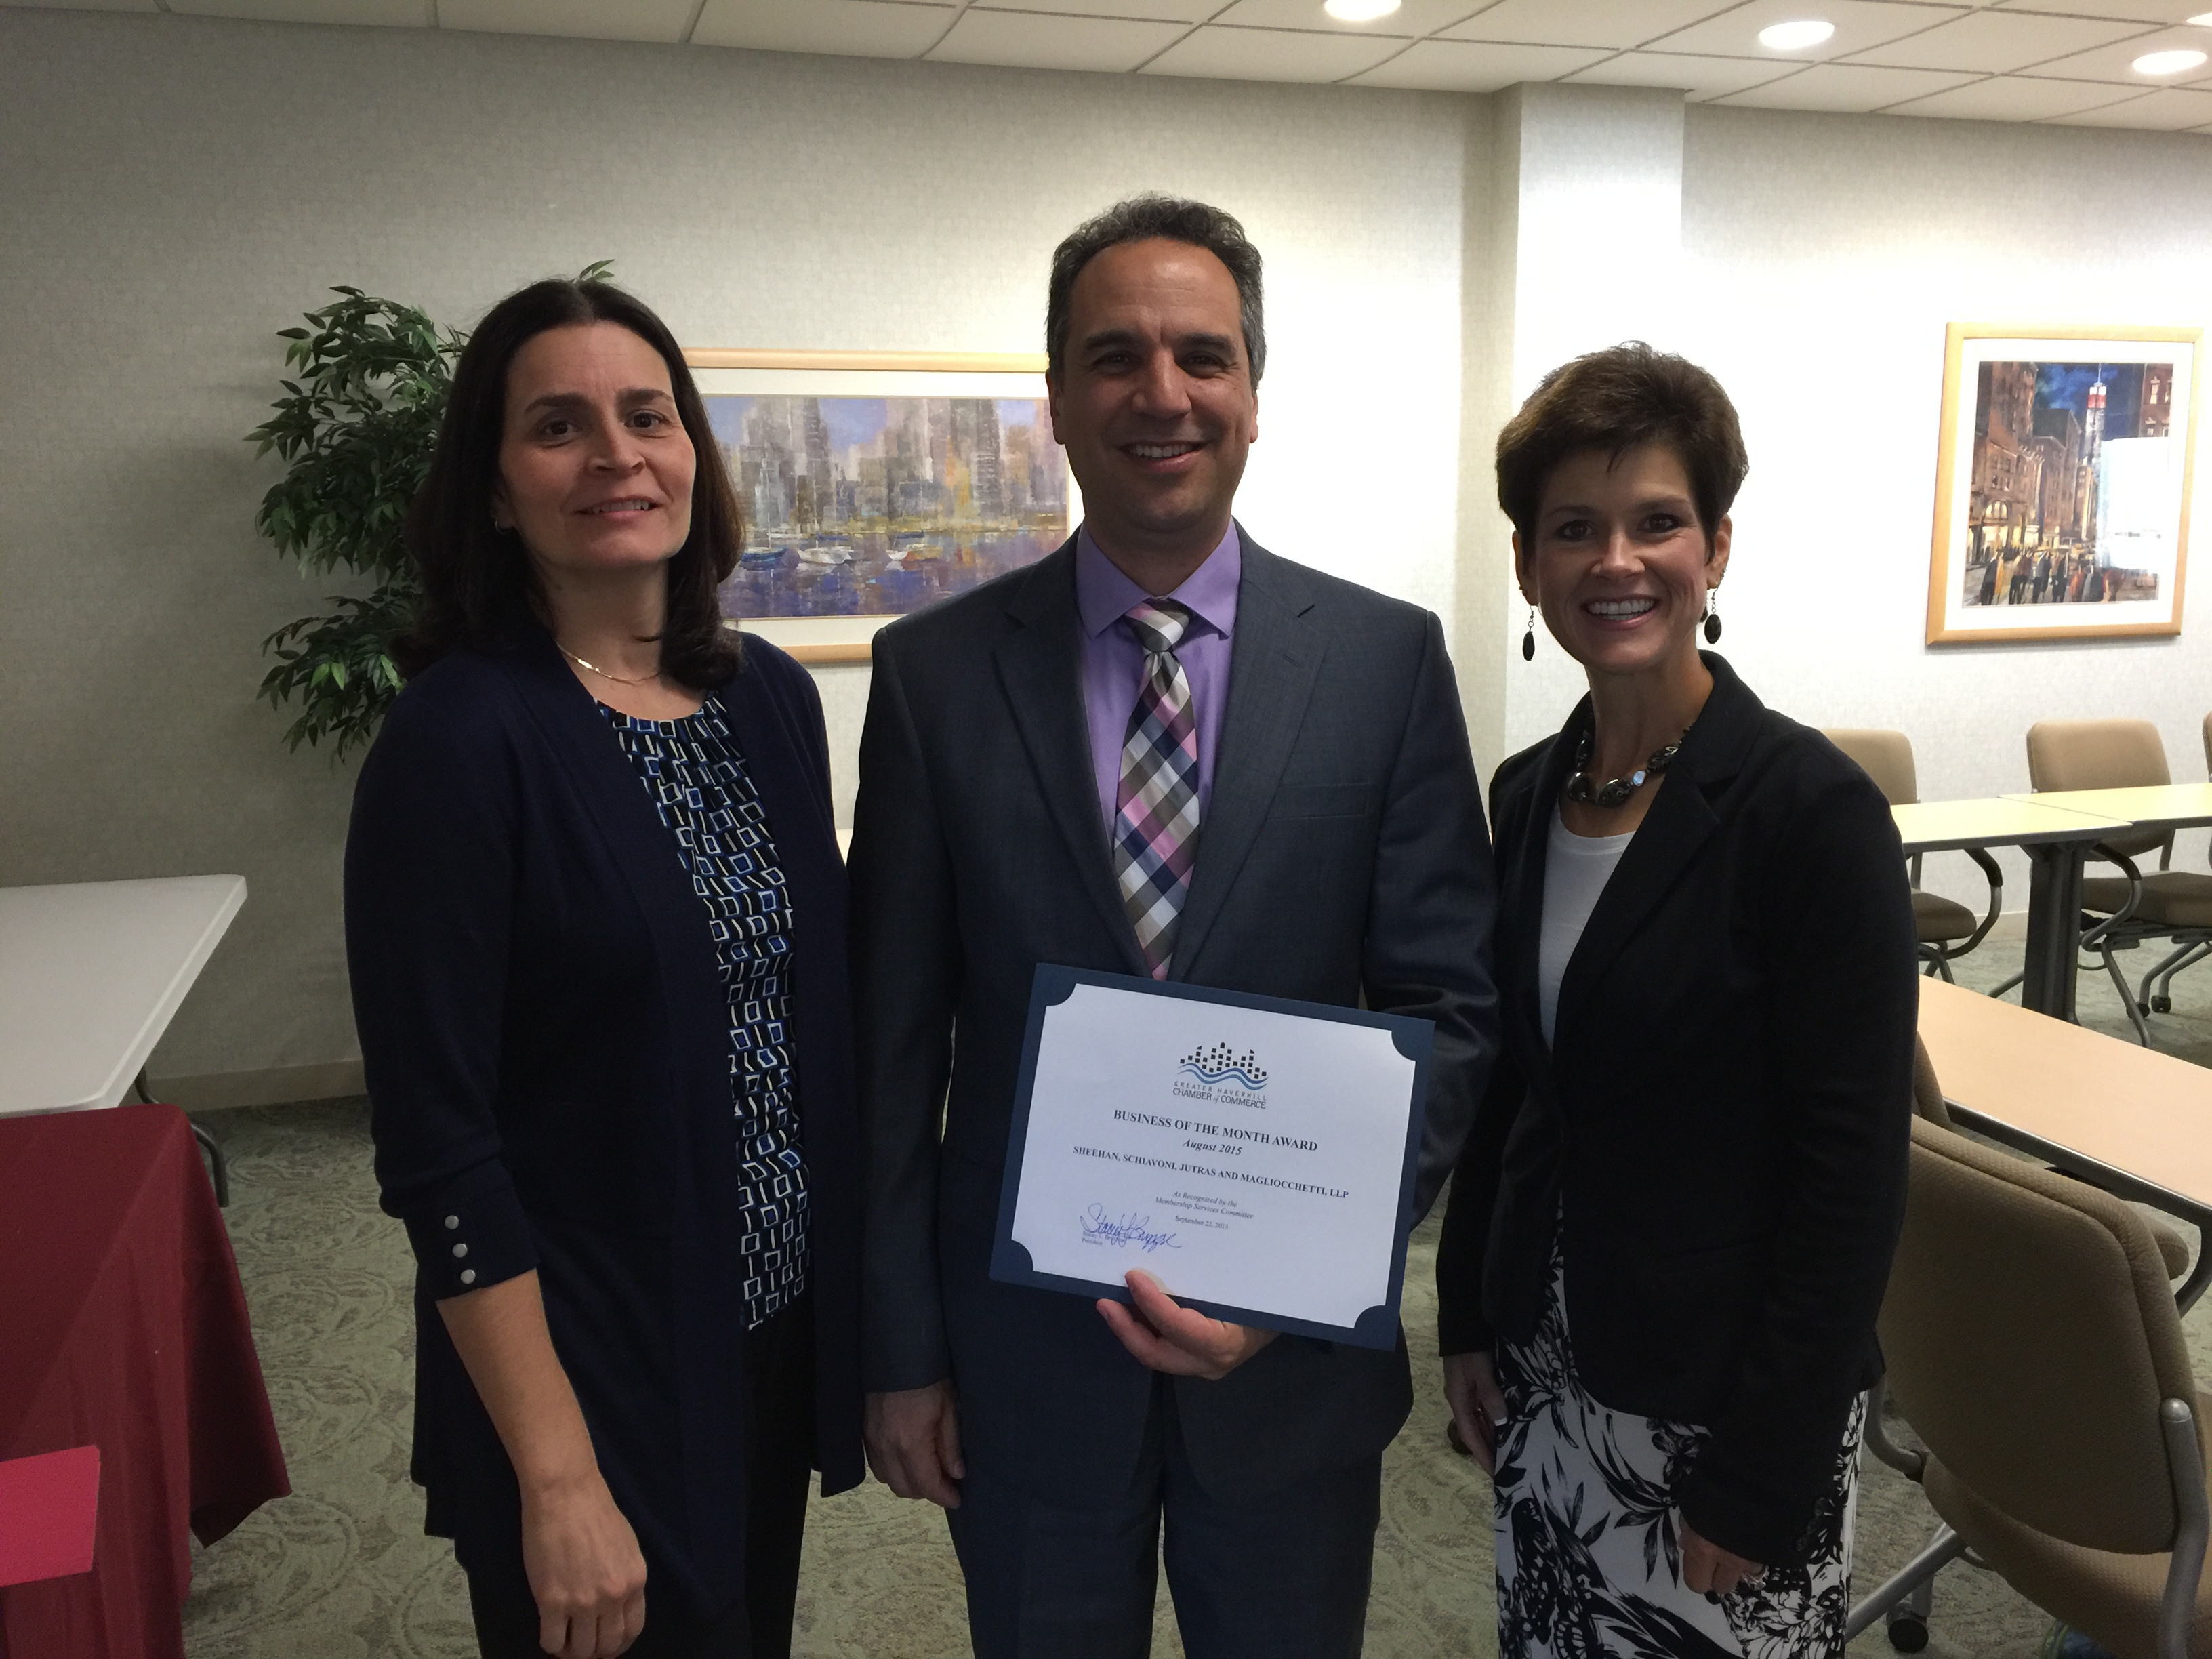 CHAMBER HONORS SHEEHAN, SCHIAVONI, JUTRAS AND MAGLIOCCHETTI, LLP BUSINESS OF THE MONTH DISTINCTION